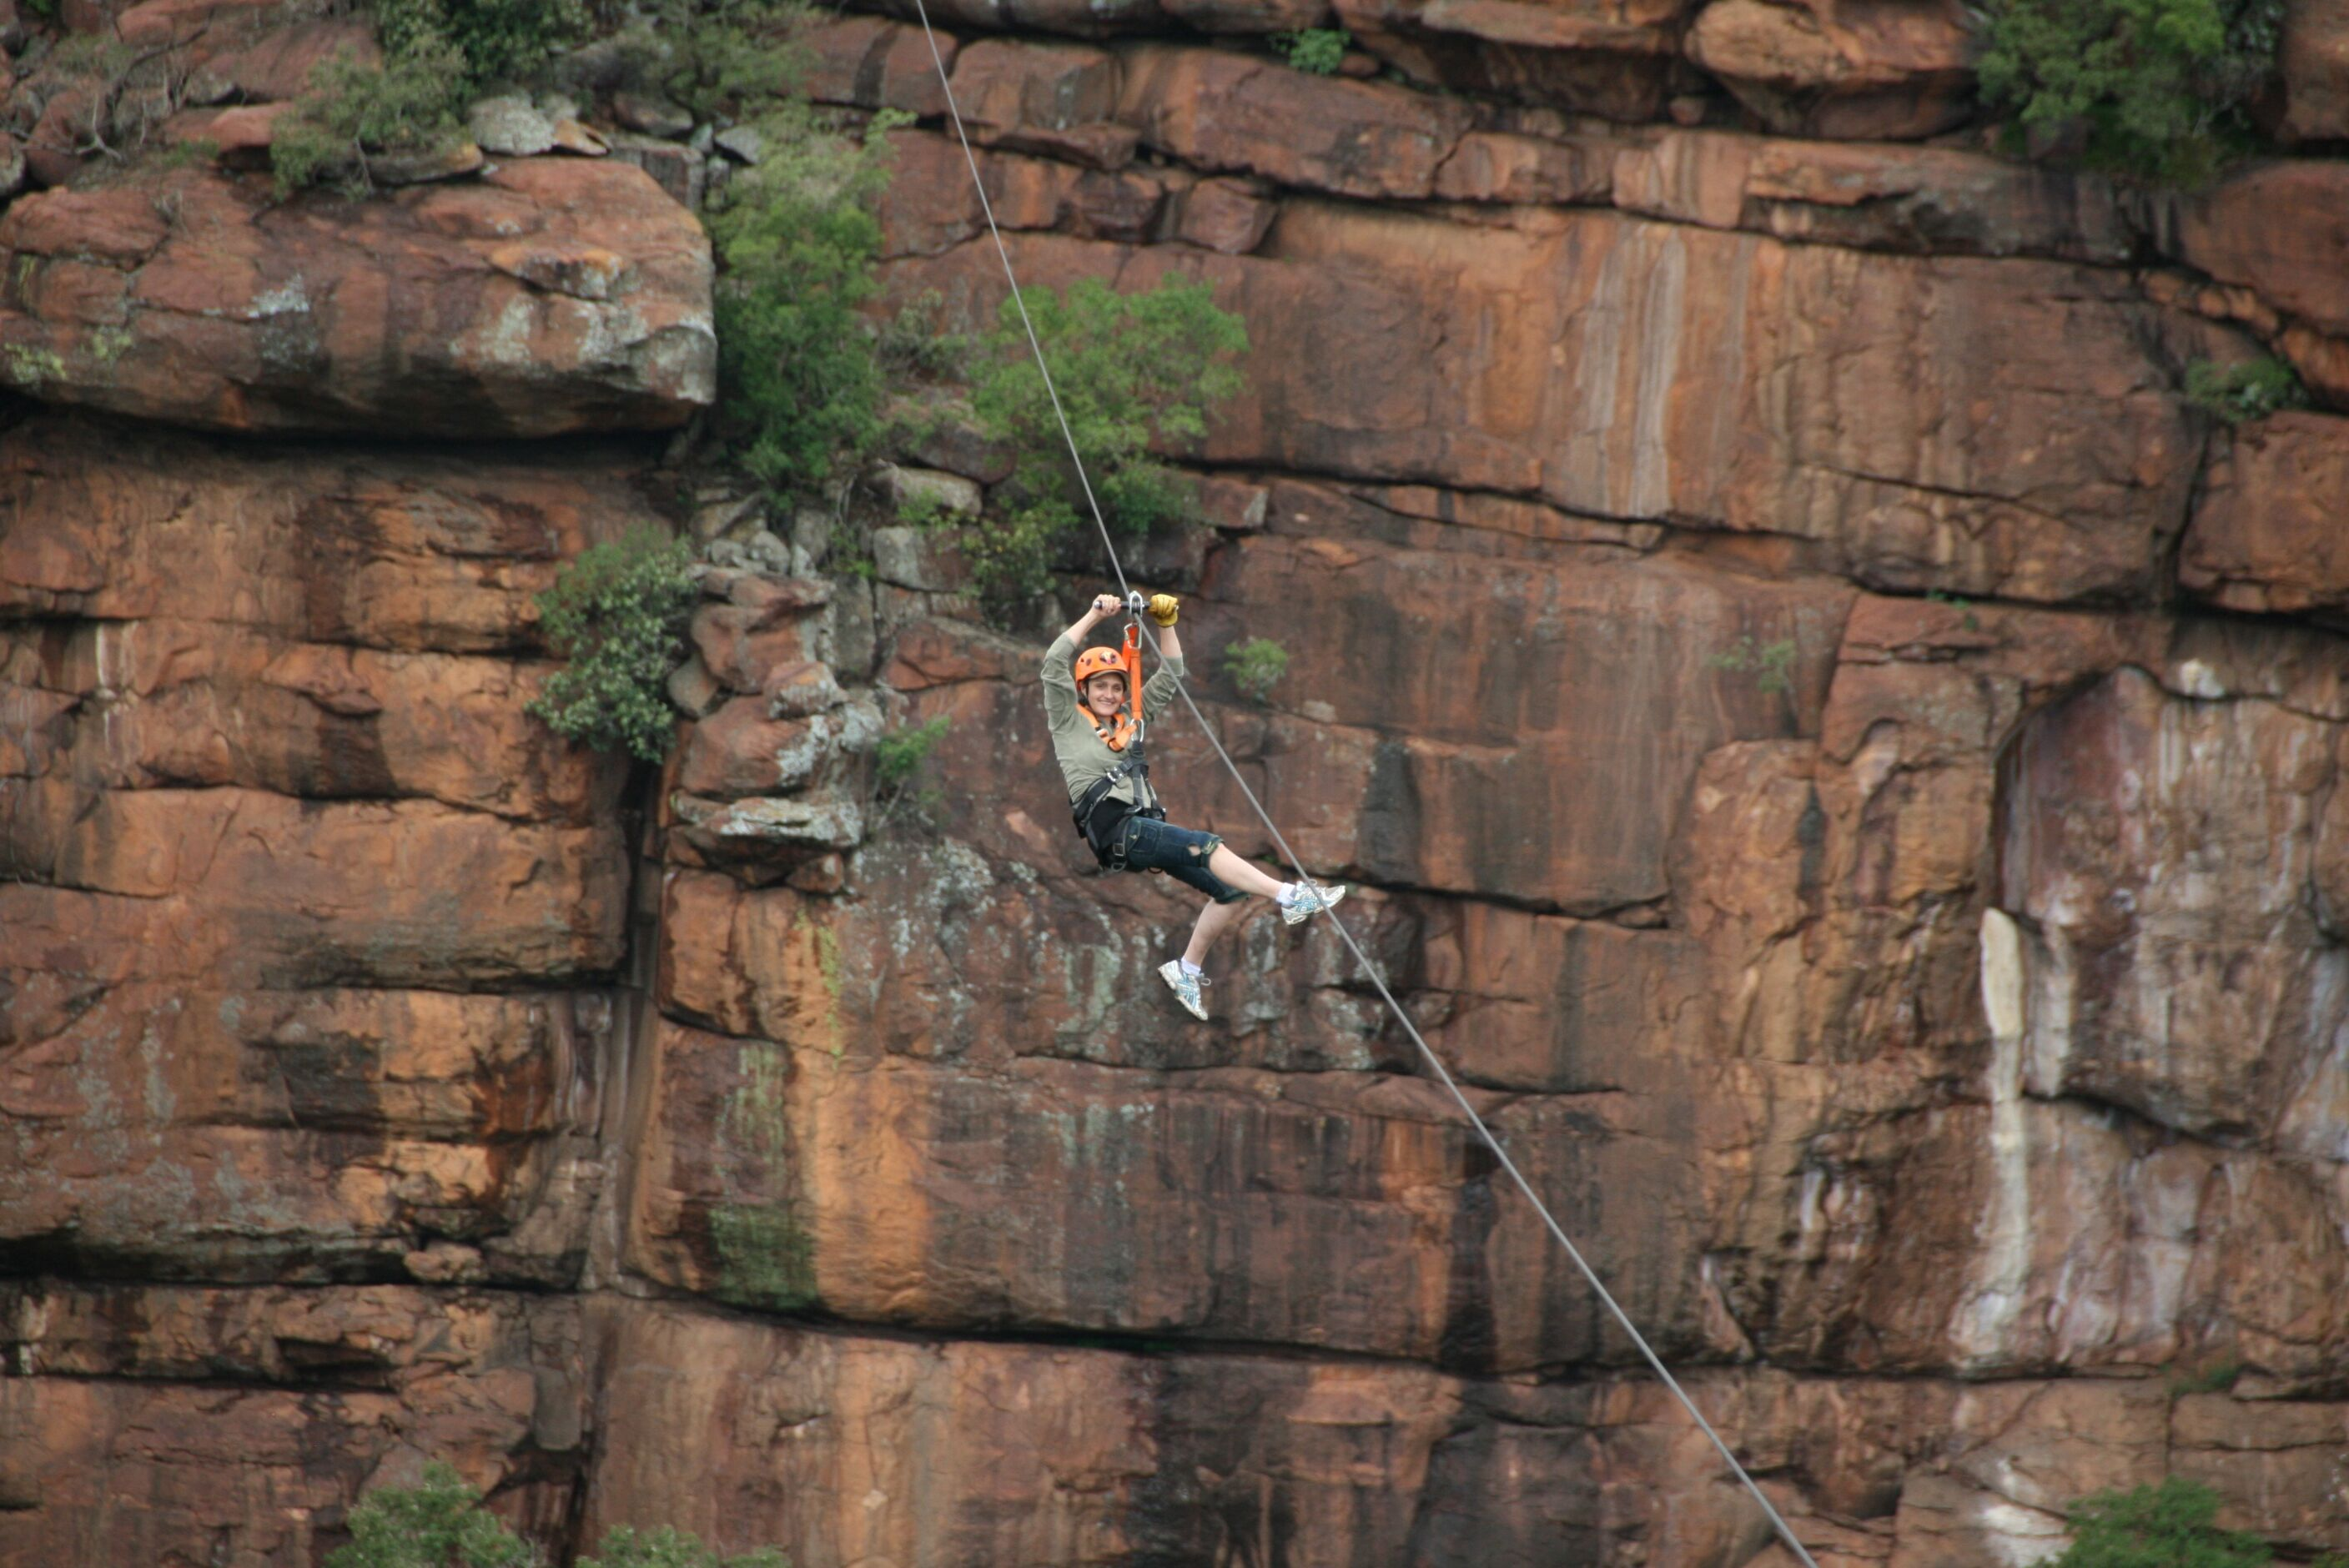 Adventure Zone Cullinan - Abseiling